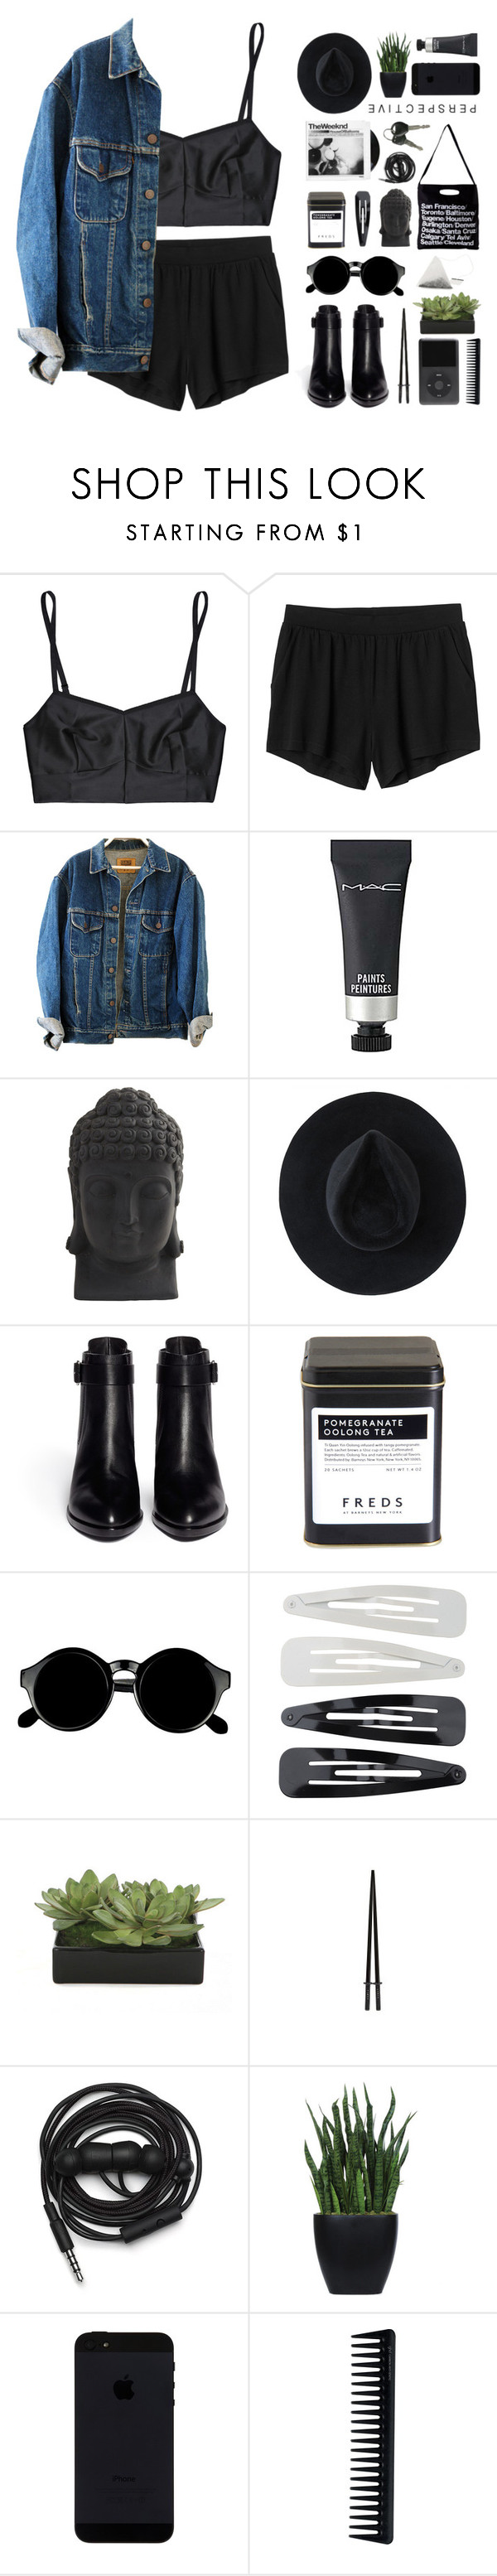 """""""how to get away with murder"""" by modernyouth ❤ liked on Polyvore featuring Jean Yu, Monki, MAC Cosmetics, Nearly Natural, Ryan Roche, Alexander Wang, FREDS at Barneys New York, American Apparel, Retrò and Forever 21"""